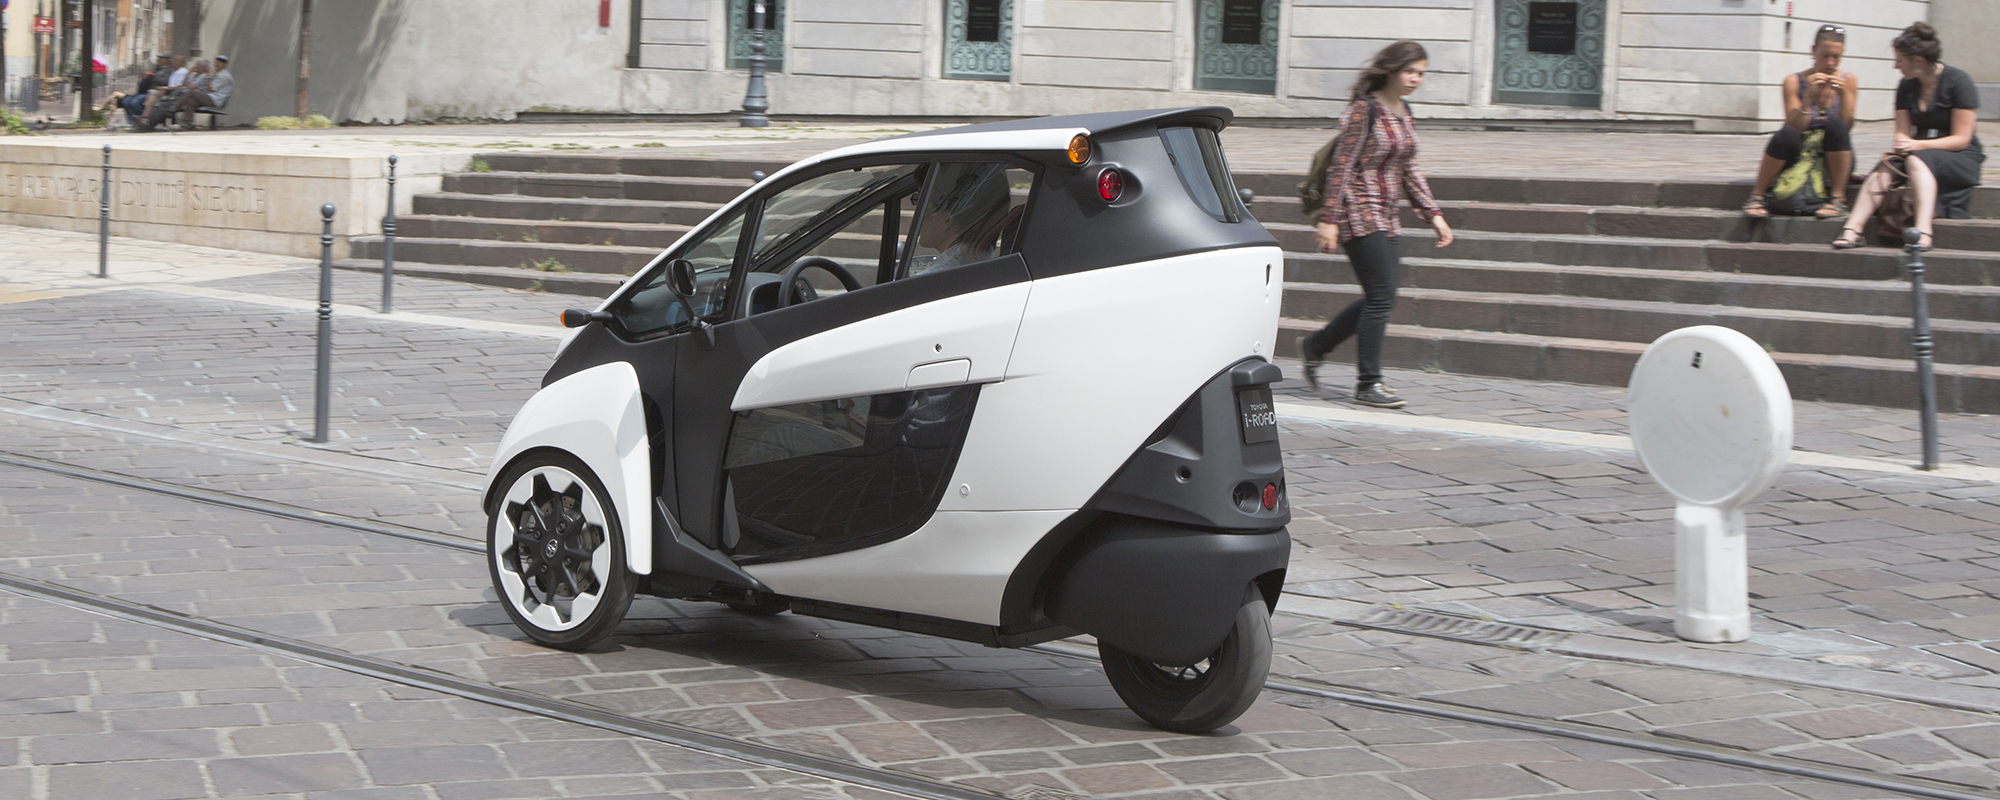 Toyota i-ROAD in Smart City project